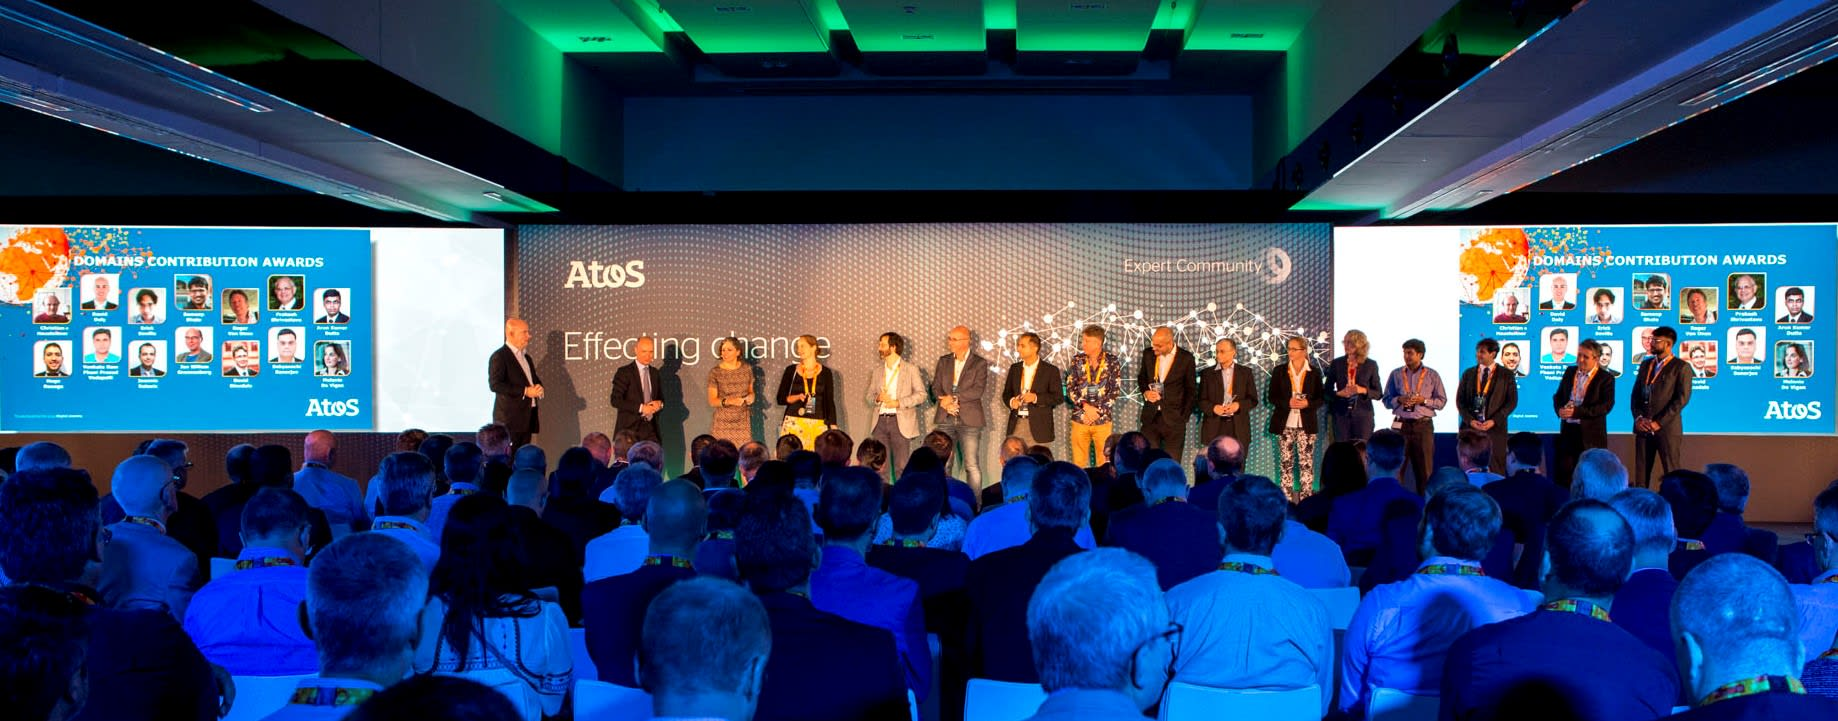 The lineup of 2019 Excellence Winners at Atos Expert Convention 2019, Madrid/Spain